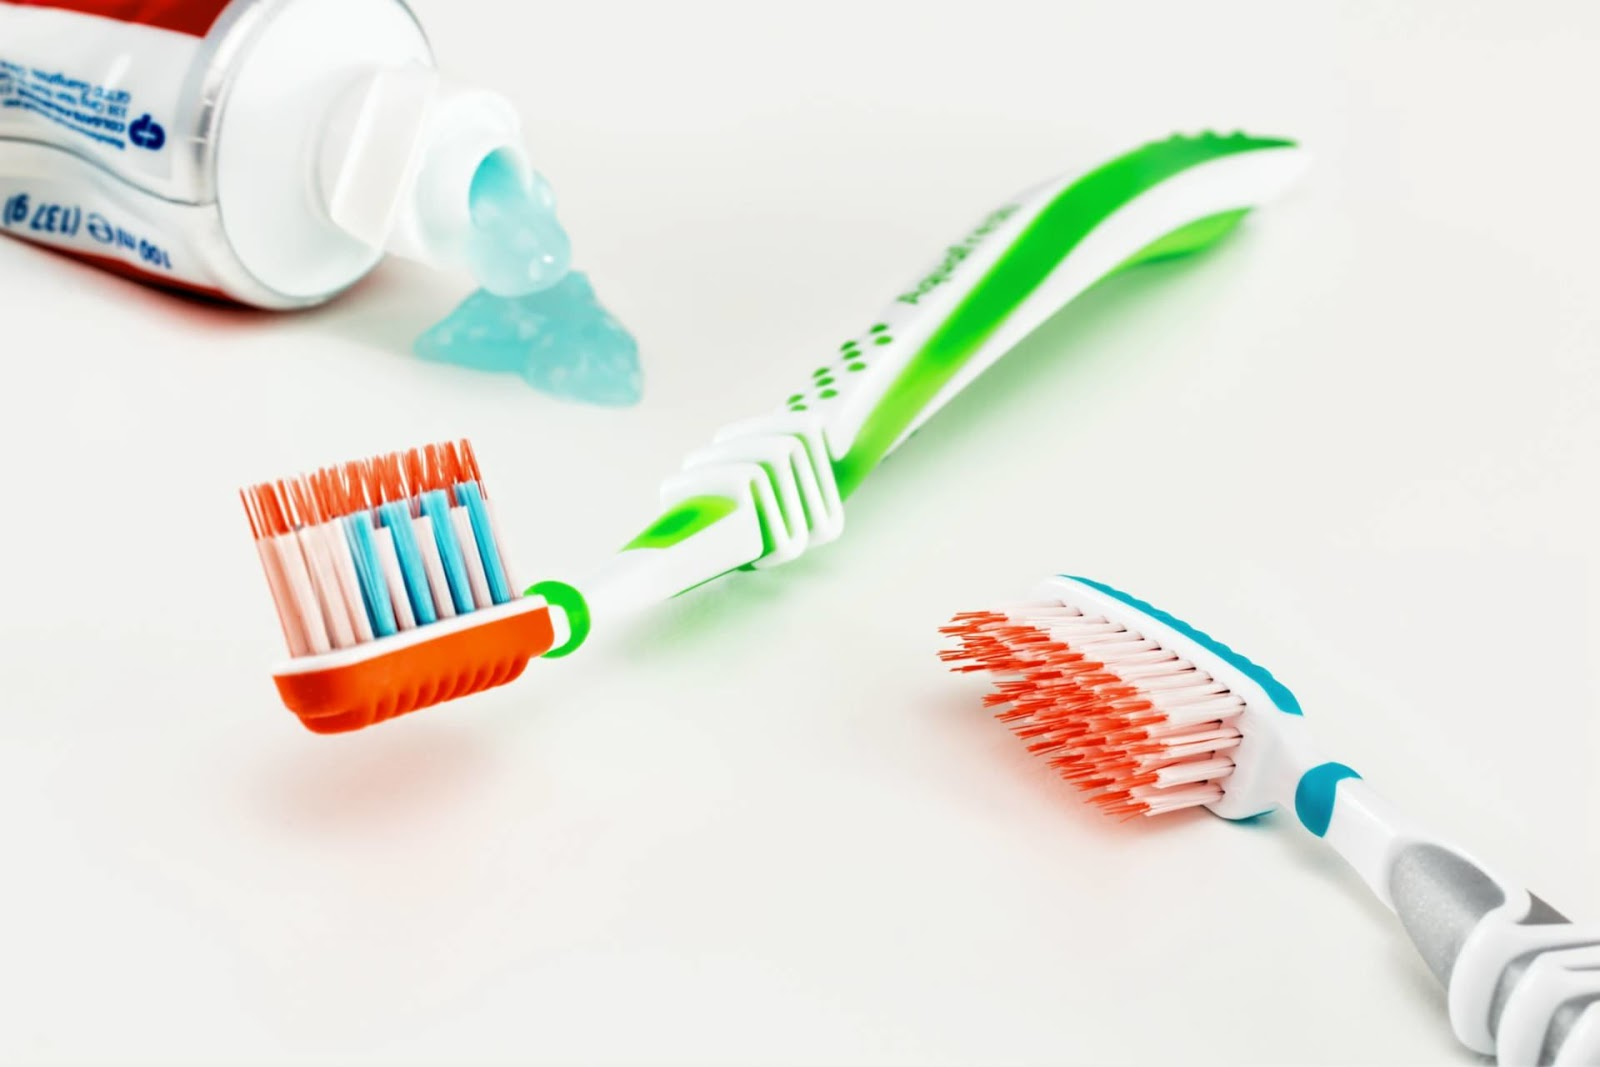 6 simple tips to prepare your child for his first dental appointment toothbrush and toothpaste